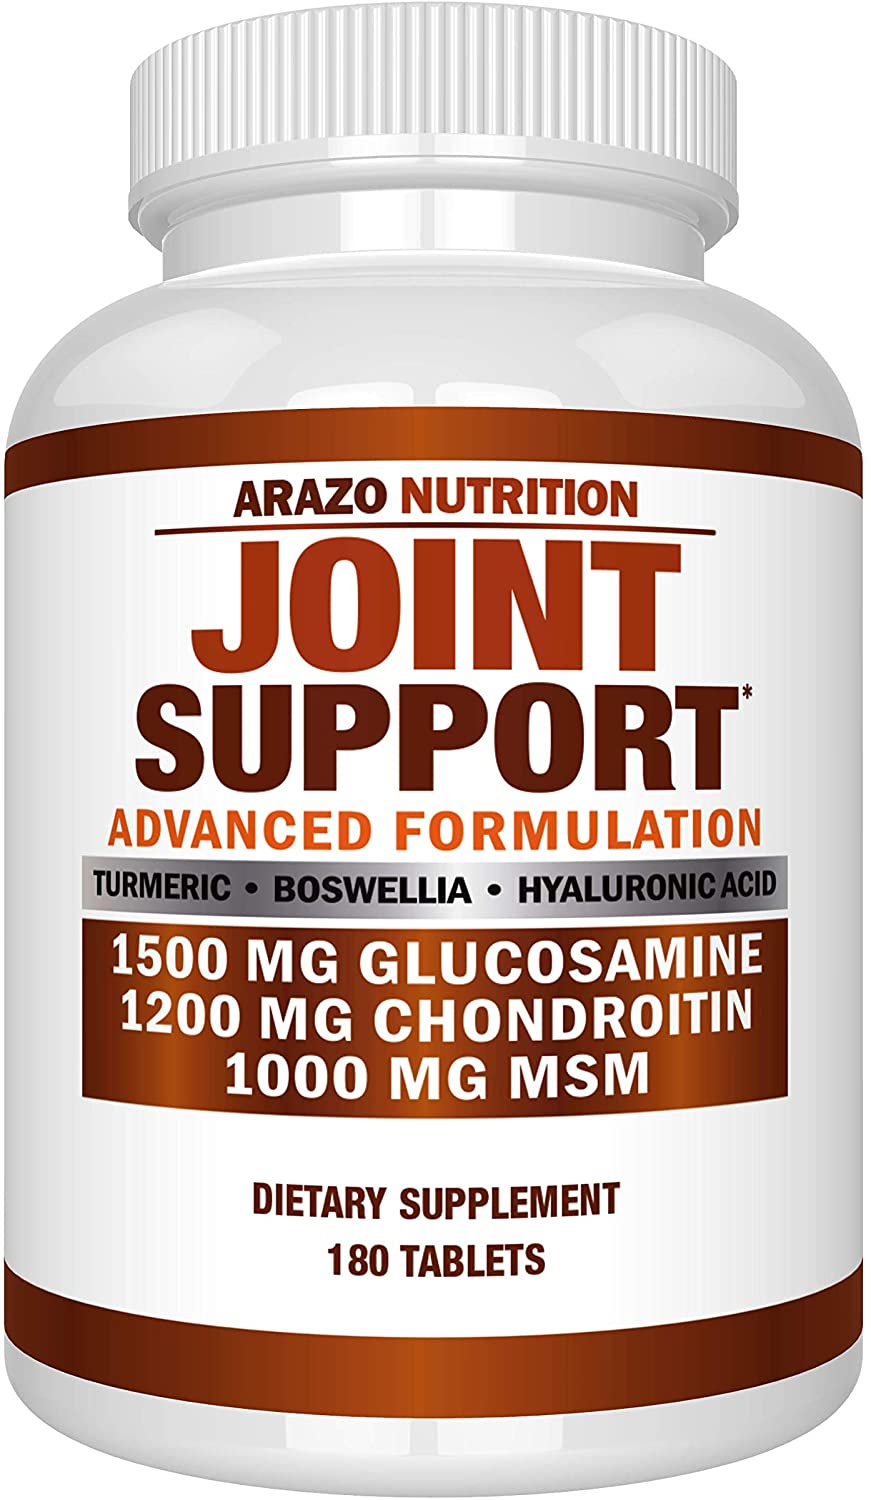 Arazo Nutrition Joint Support Supplement - with Glucosamine, Chondroitin, Turmeric, Msm, Boswellia